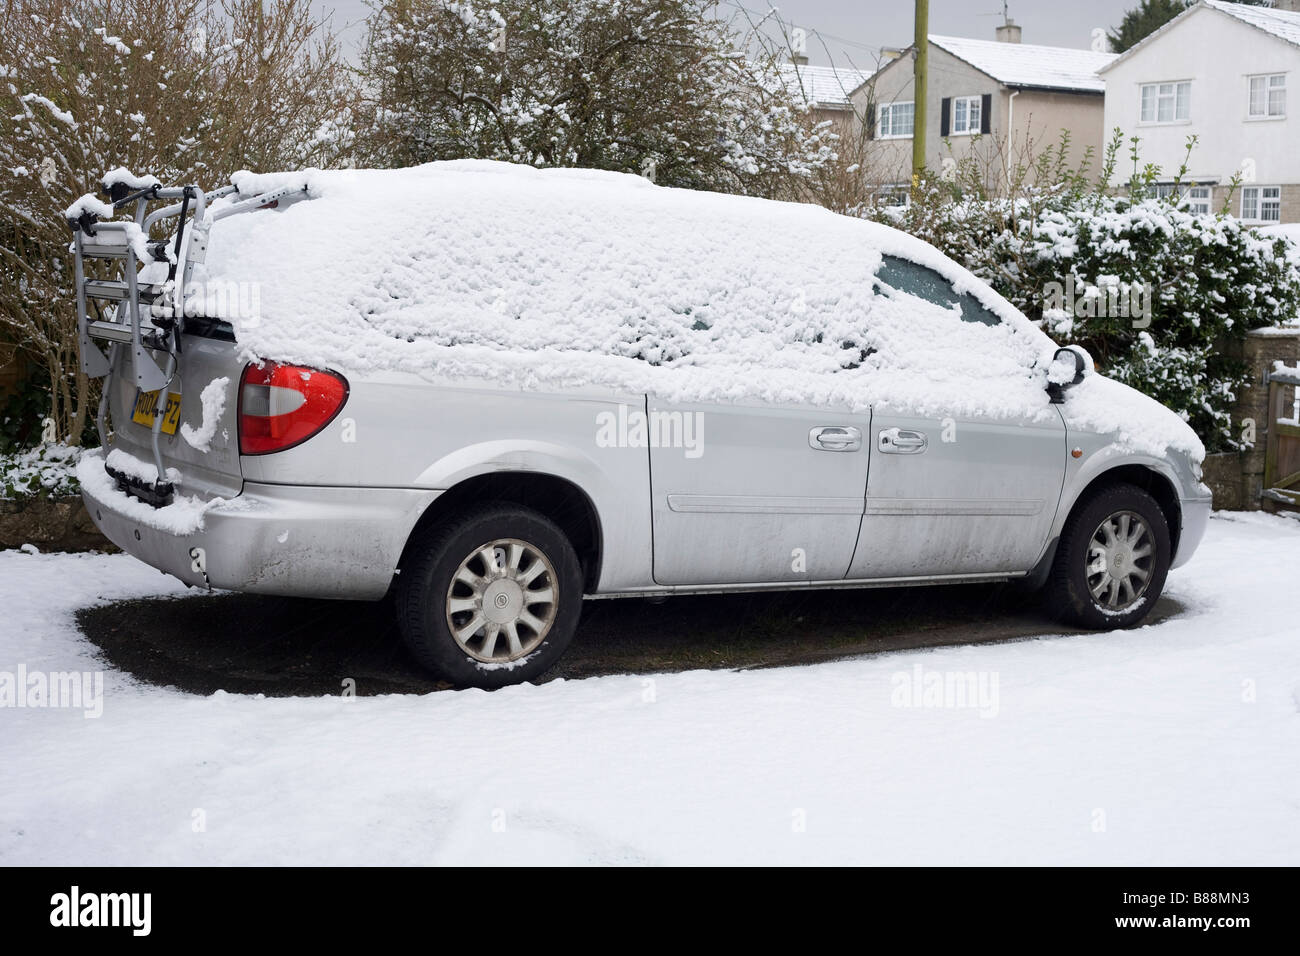 Nobody is going cycling or indeed anywhere on this snowy day when the Chrysler grand voyager remains parked on the Stock Photo